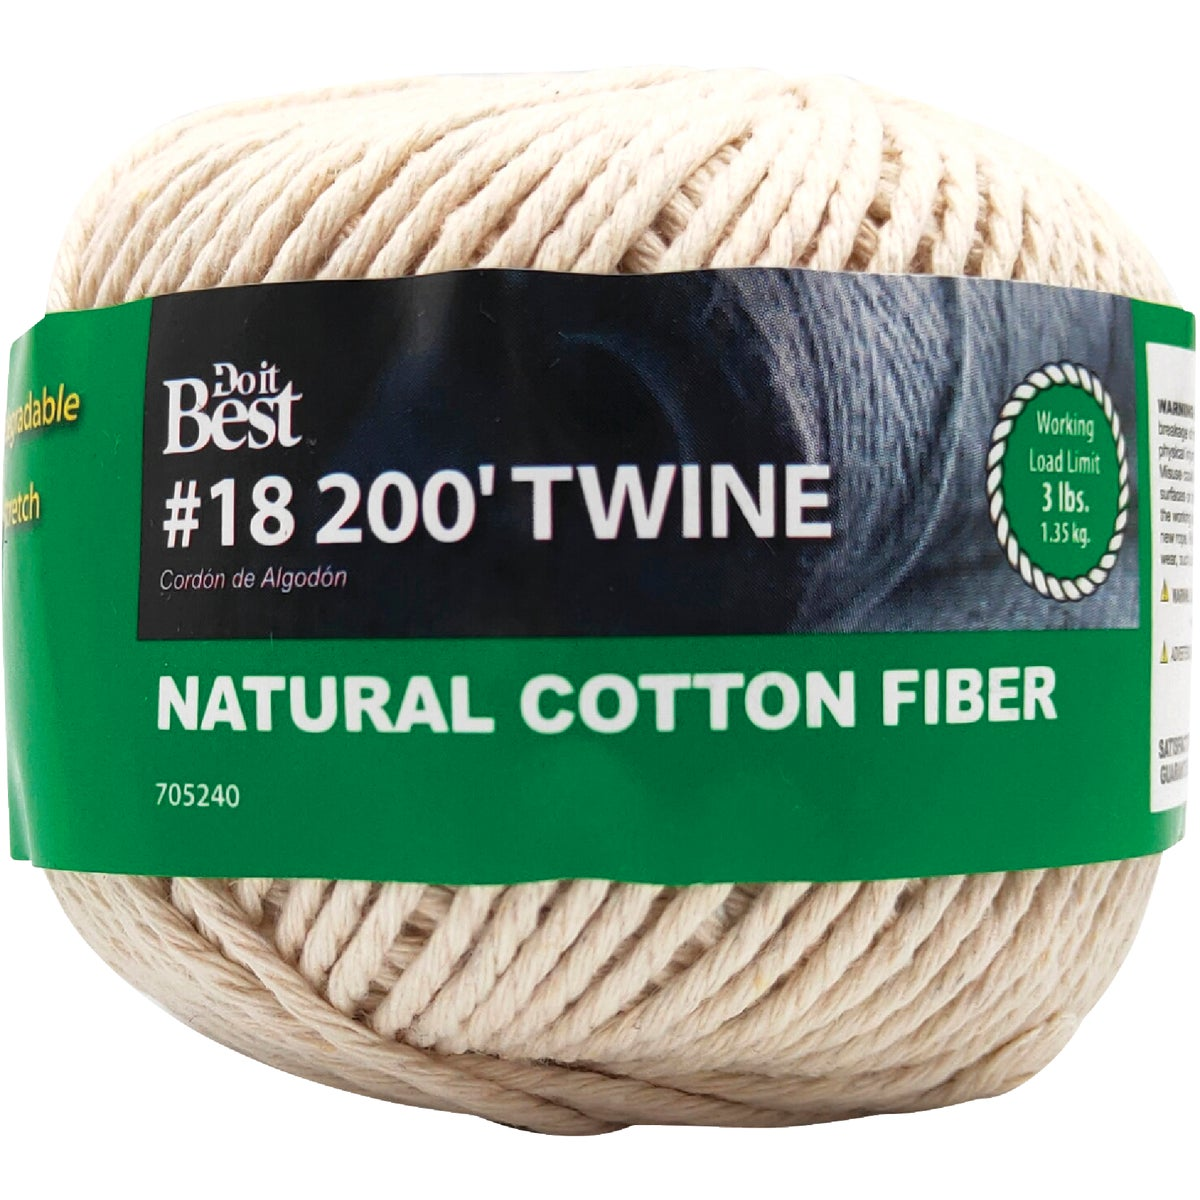 #18 200' COTTON TWINE - 705240 by Do it Best